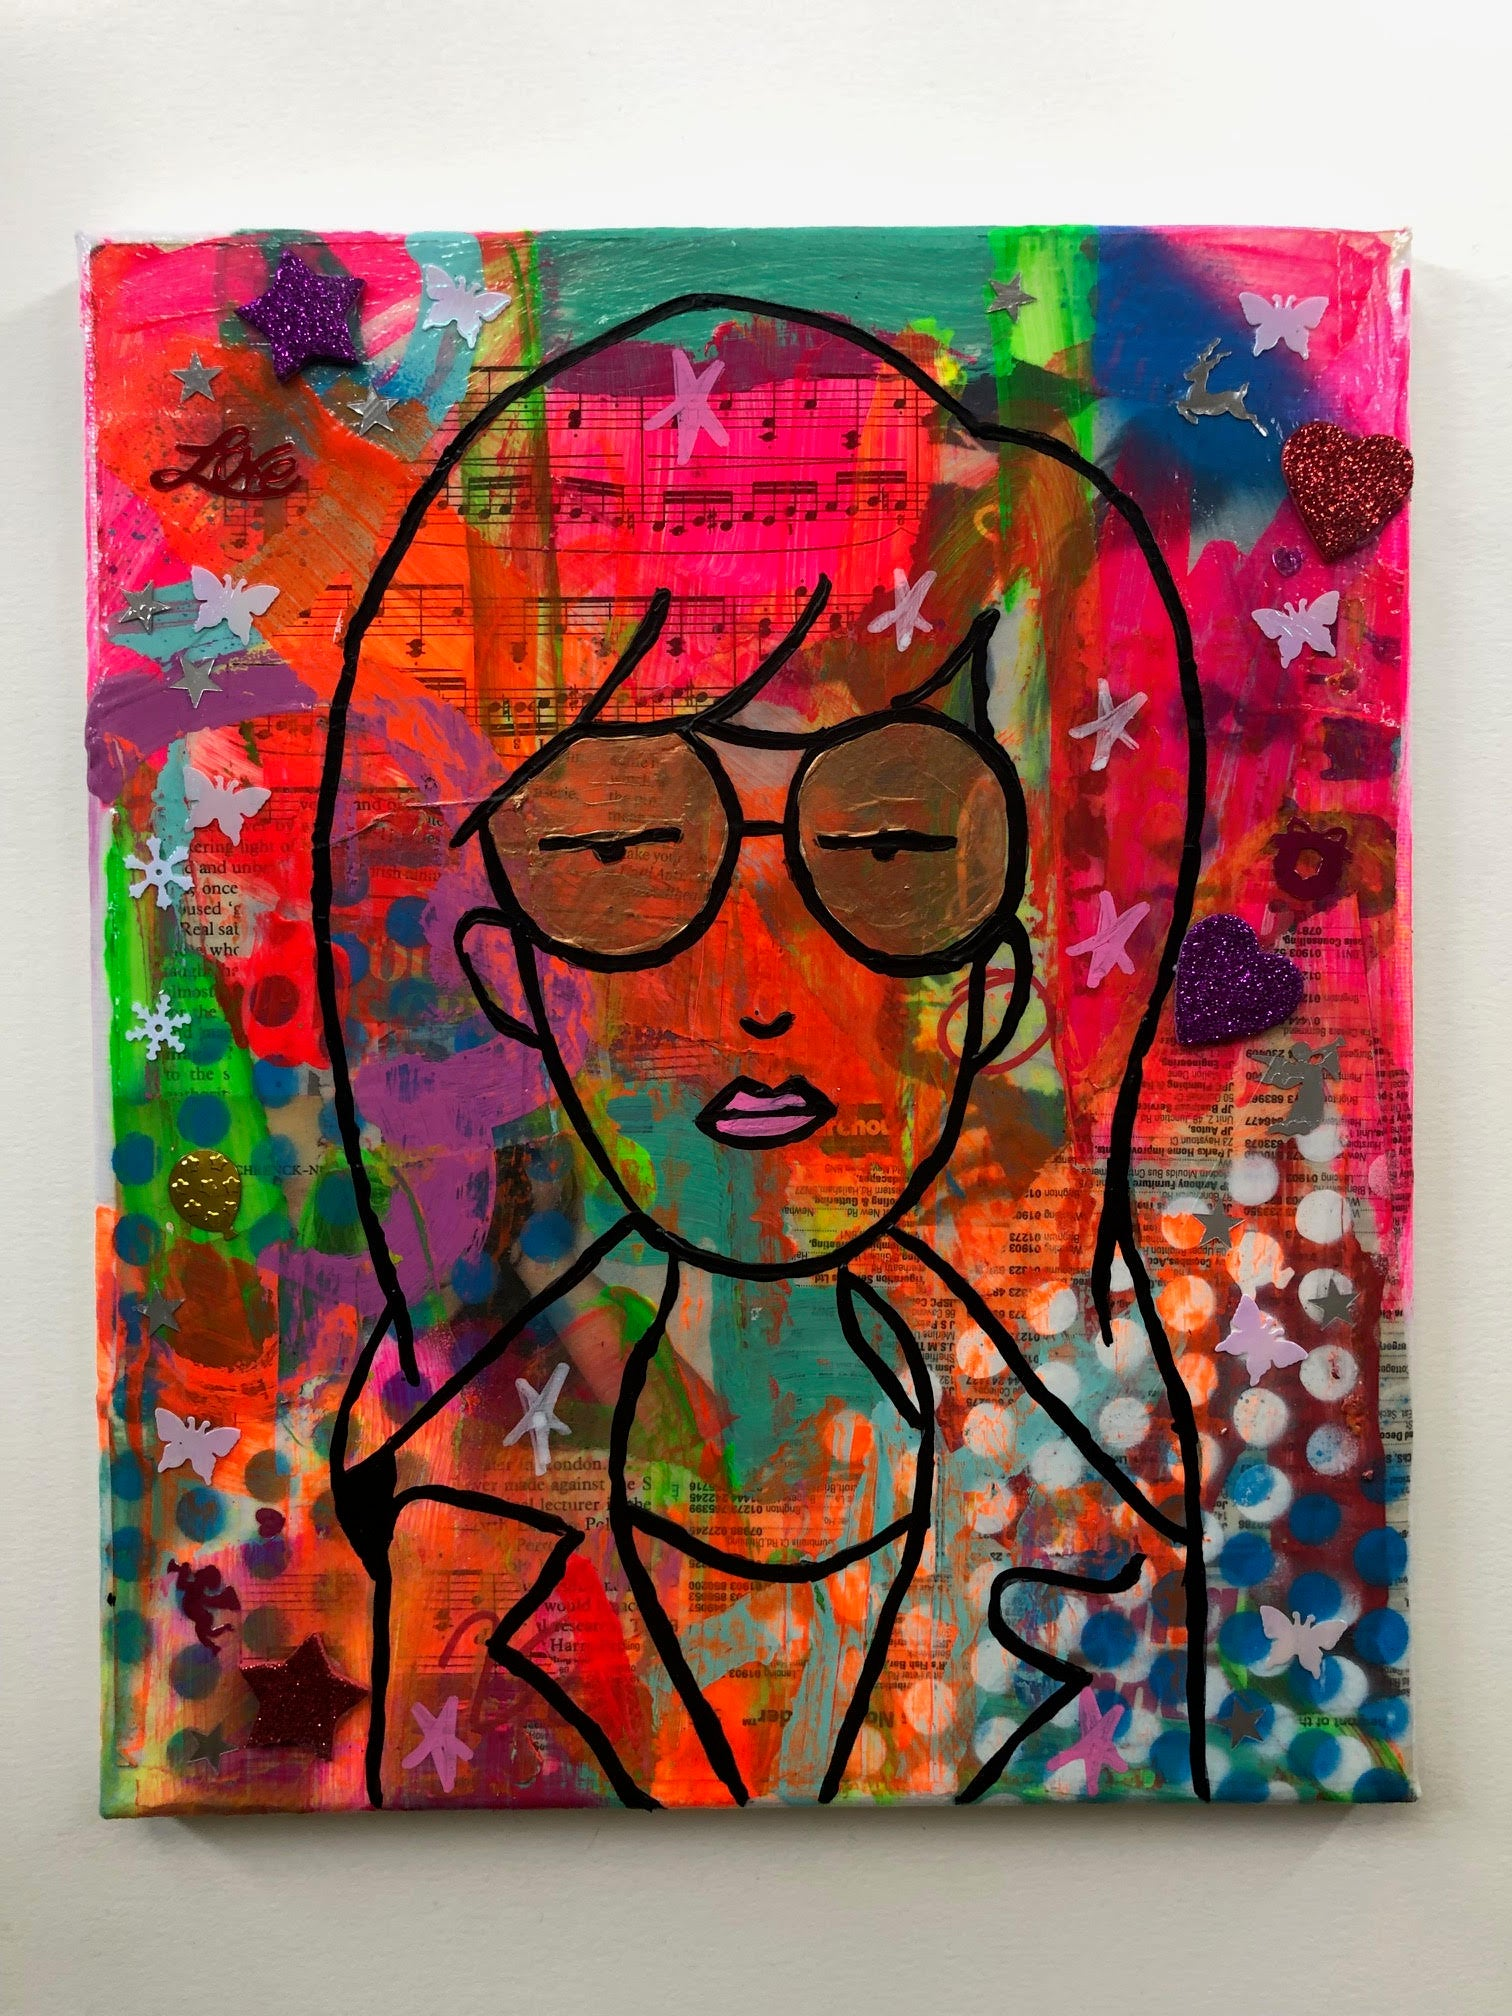 Sick Sad World by Barrie J Davies 2019